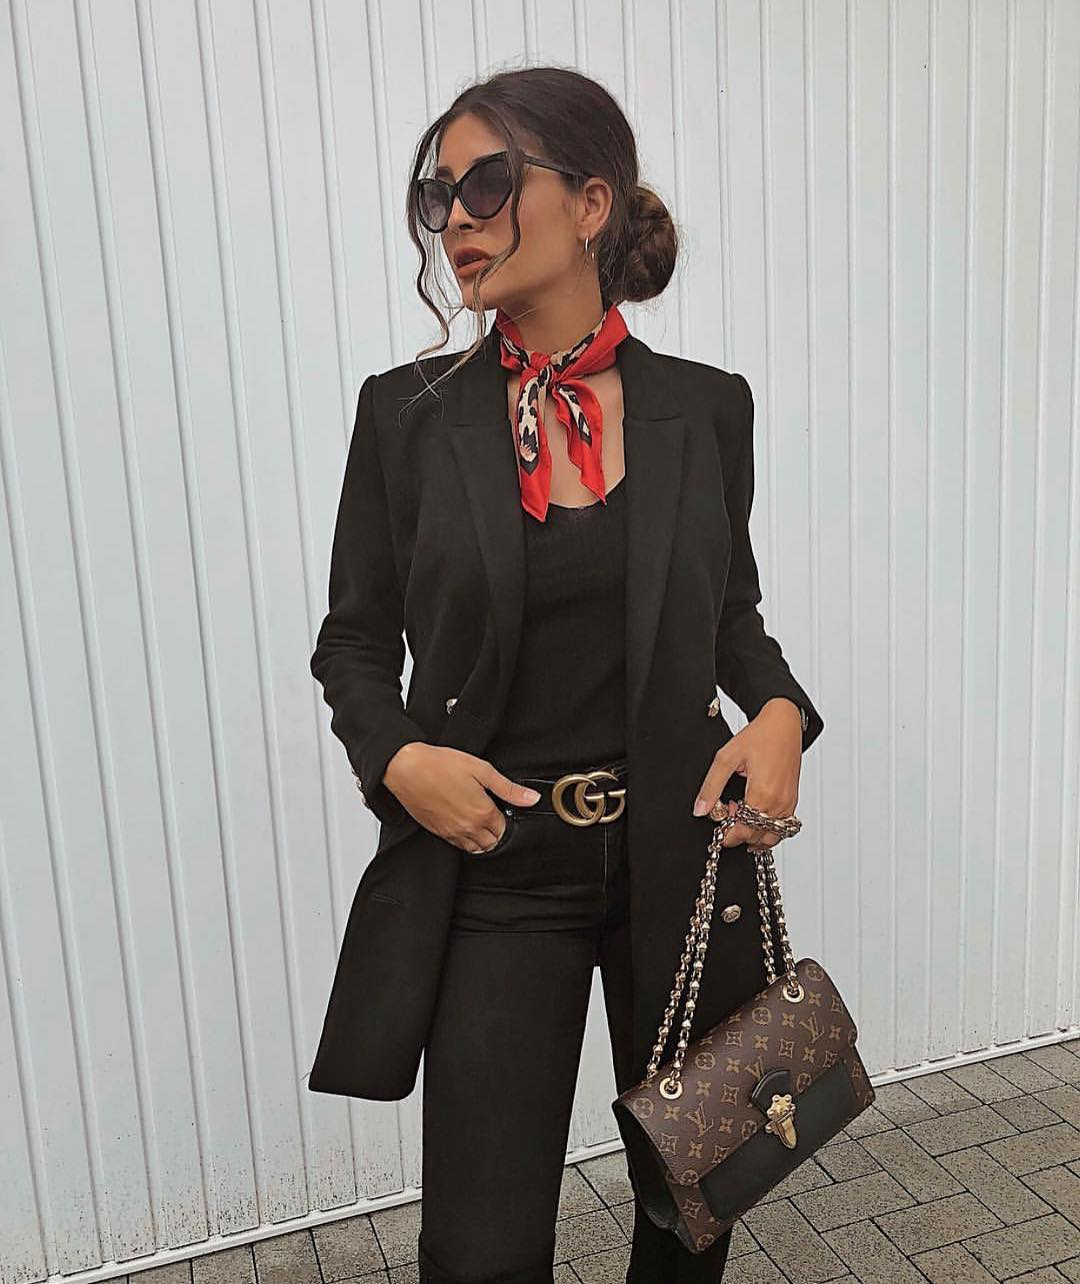 All Black Pantsuit For Spring With A Red Neck-scarf 2019